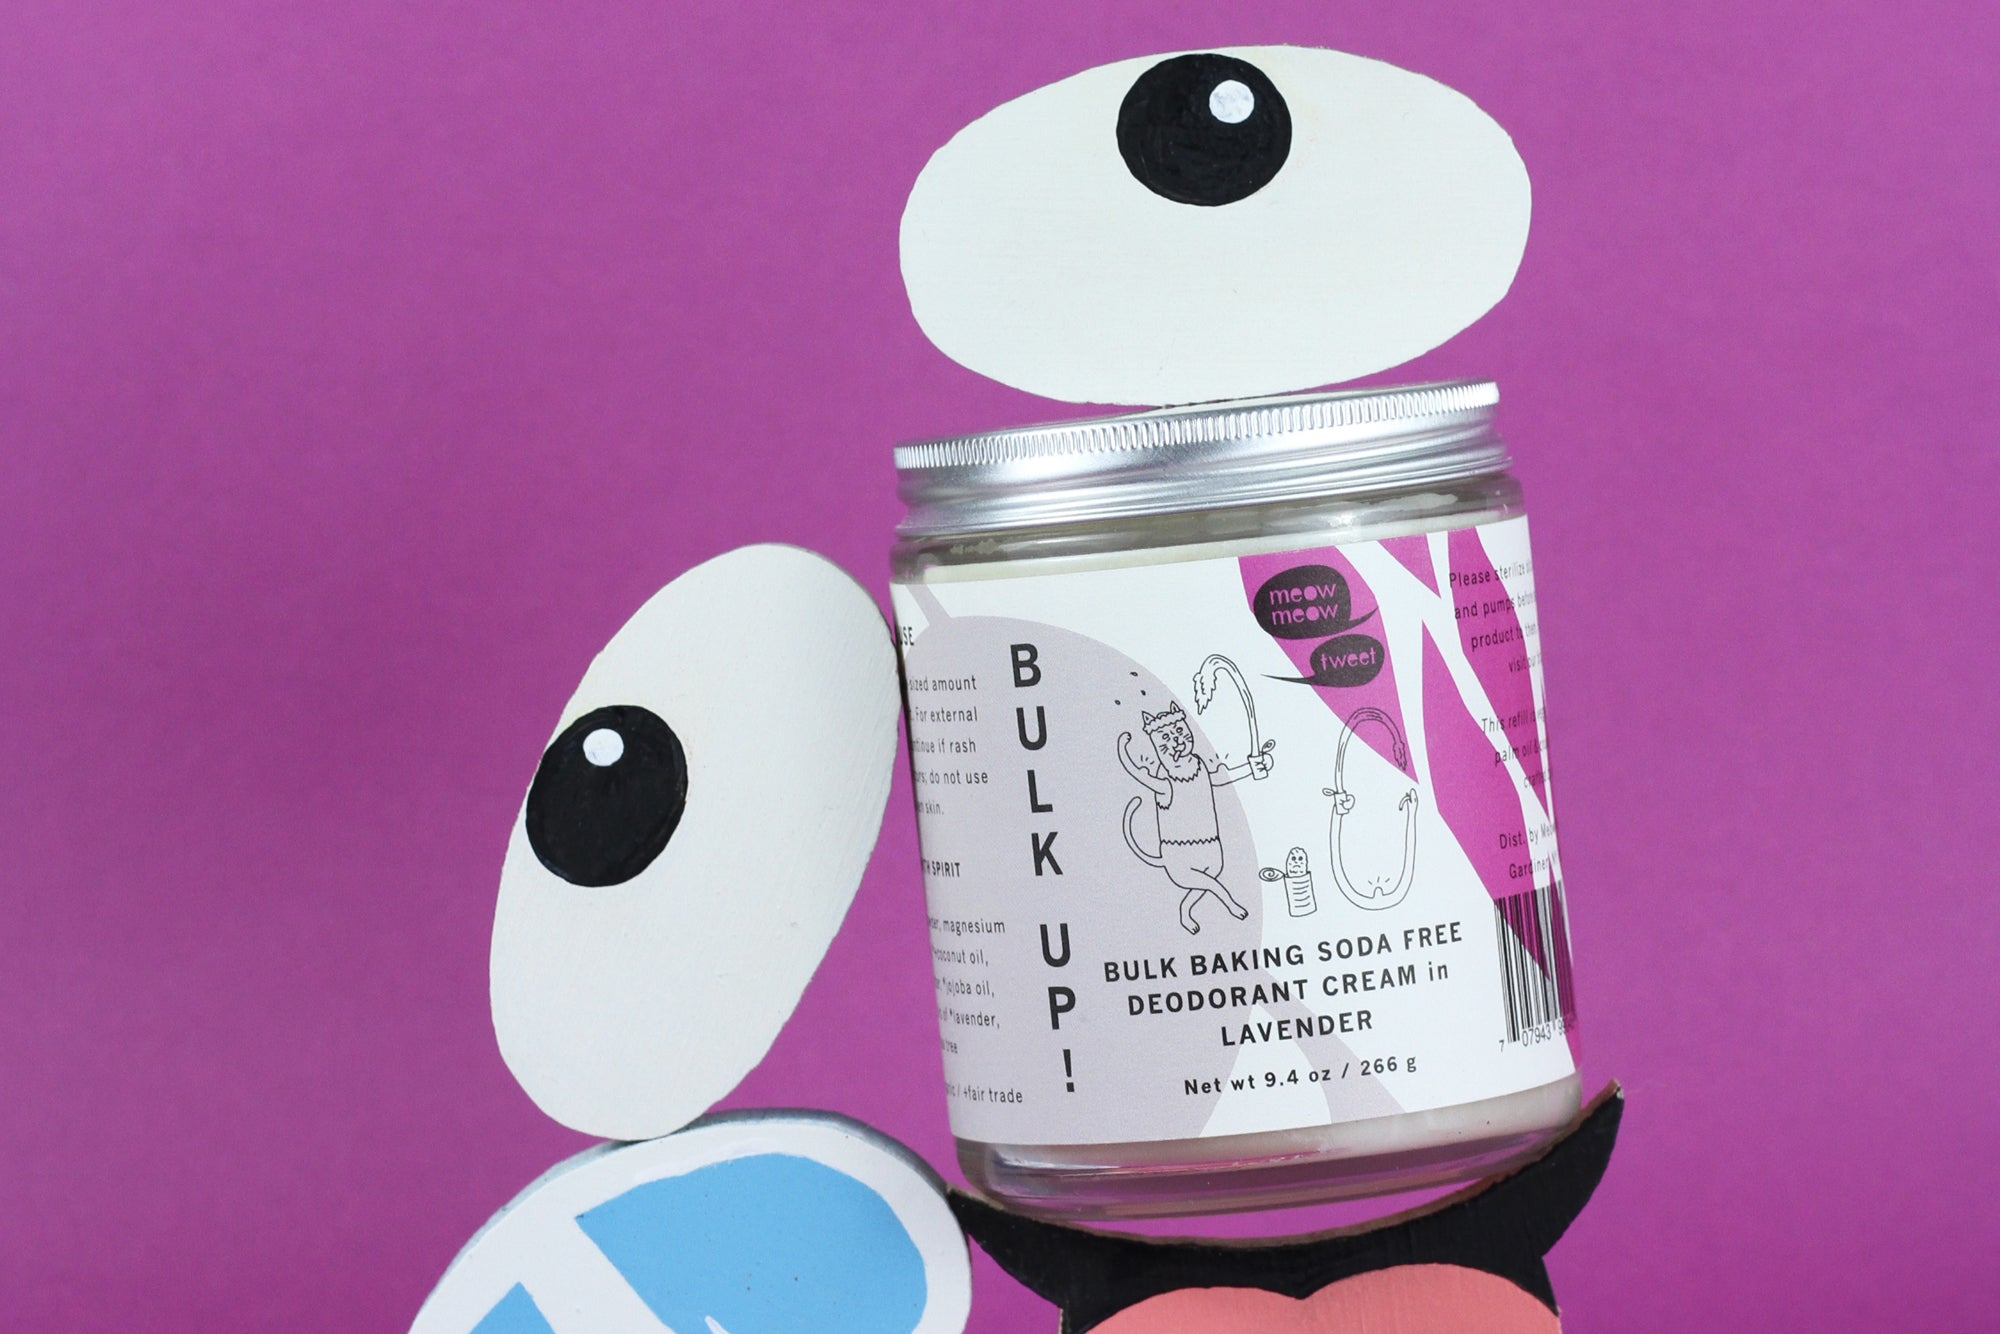 a bulk deodorant sitting with wooden carved and painted emojis of googley eyes